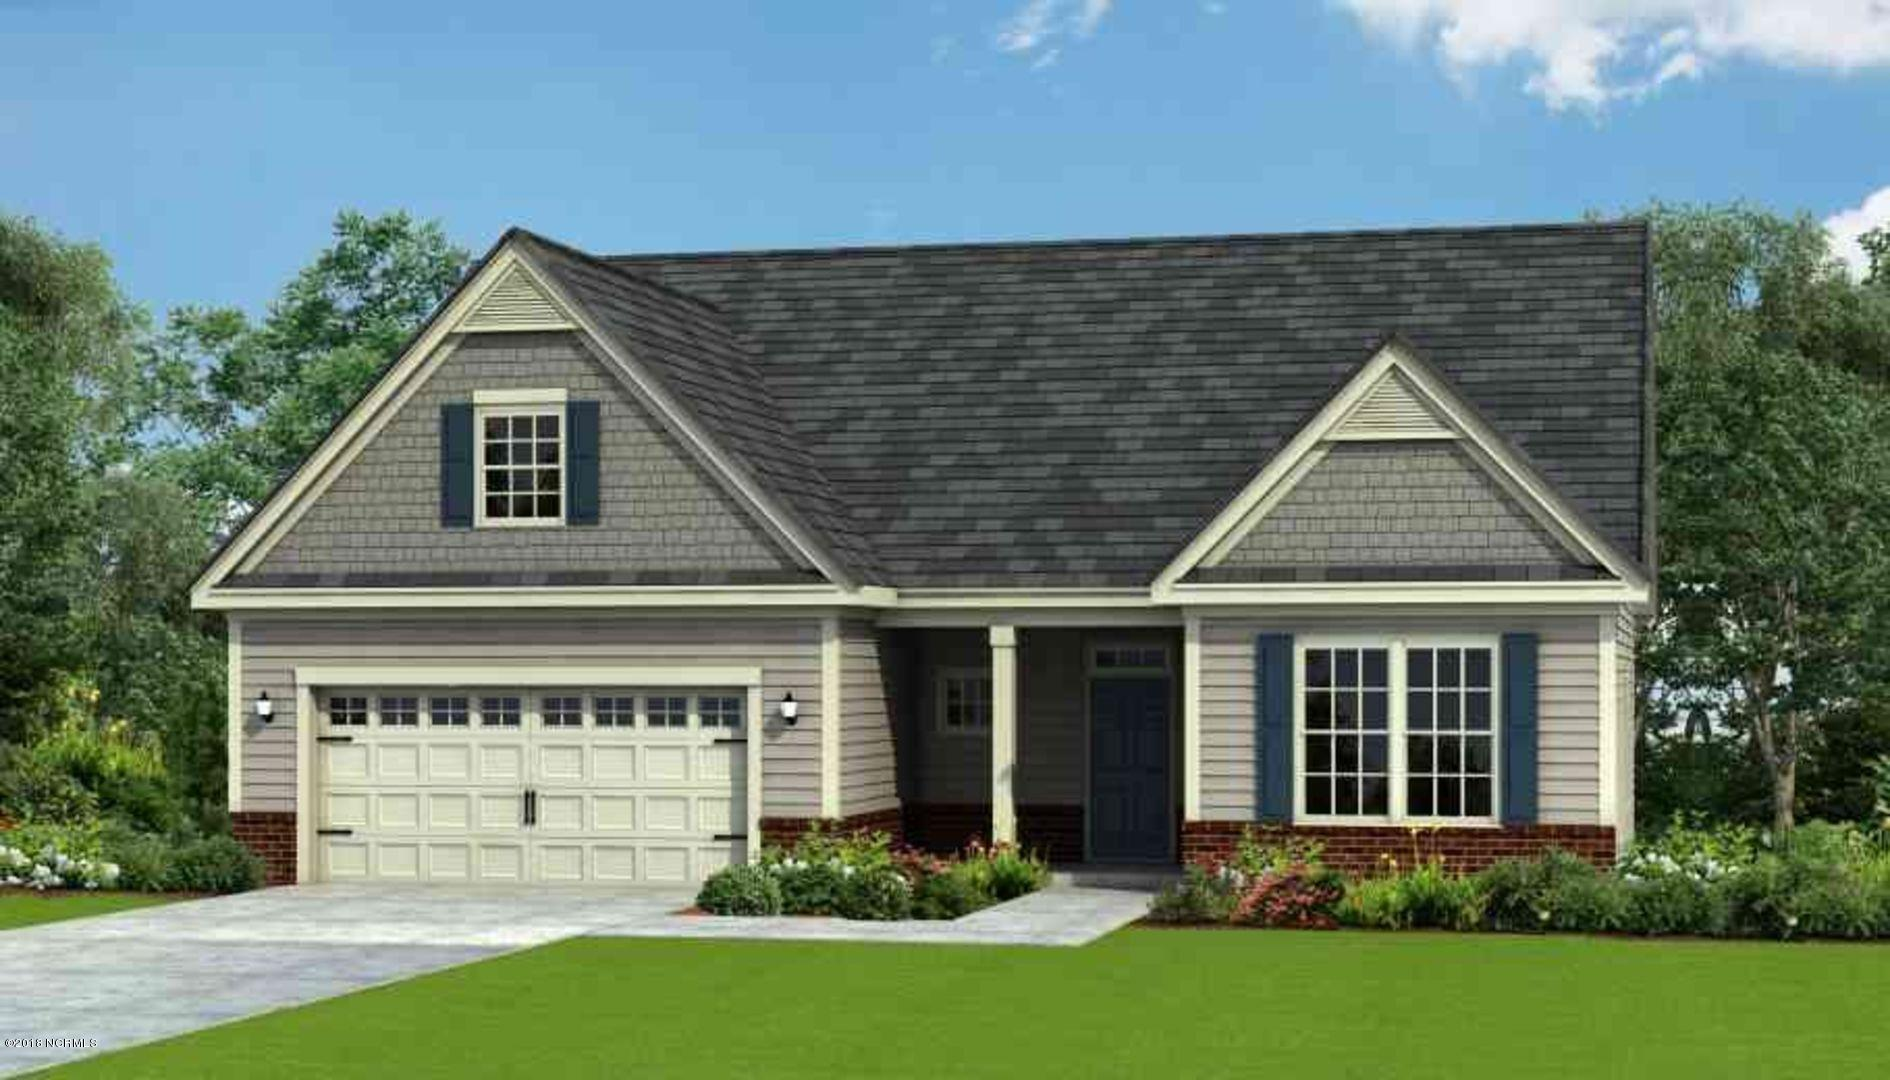 PRESALE, additional homesites available. The 'Wrightsville 2 is an open concept ranch plan offering over 2611 heated square feet. The entrance of this home opens to a foyer with and leads to a spacious family room. The living room is bookended by windows letting in lots of light and open floorplan is great for entertaining. The kitchen is equipped with a pantry & an eat-at-island. The 13'x13' casual dining room is directly off the kitchen. The rest of the main floor living consists of the Owners Suite, Owners Bathroom, spacious 2nd & 3rd bedrooms, a full bath, and a laundry room. Upstairs you will also find another large bonus room, bedroom and full bathroom. Photos, measurements and descriptions are renderings and may not be exact.